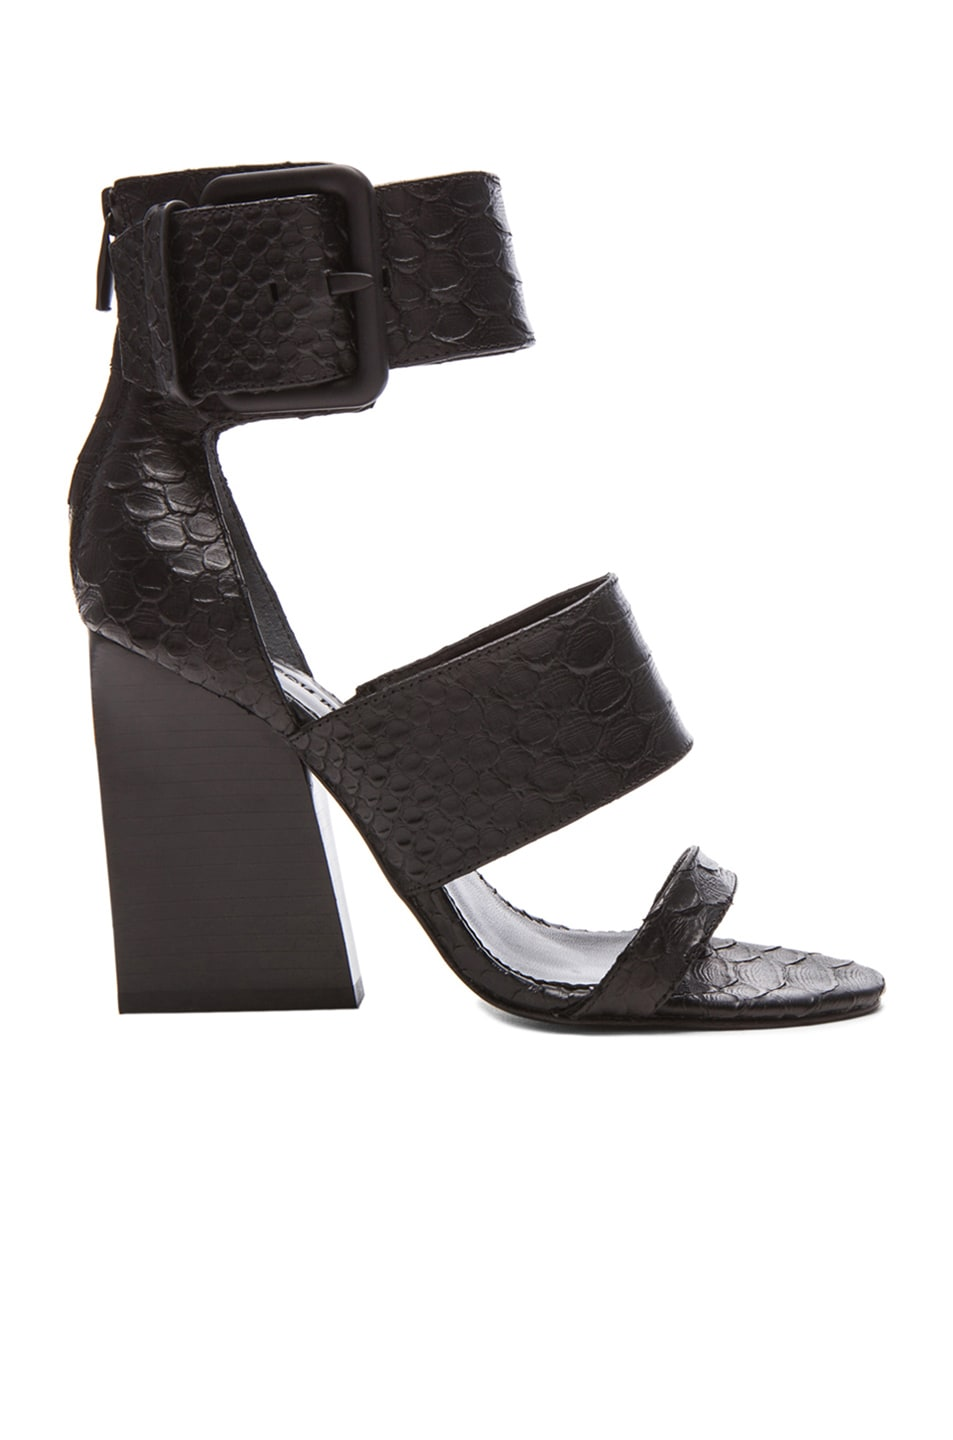 Image 1 of Sigerson Morrison Poker 2 Snake Embossed Leather Sandals in Black